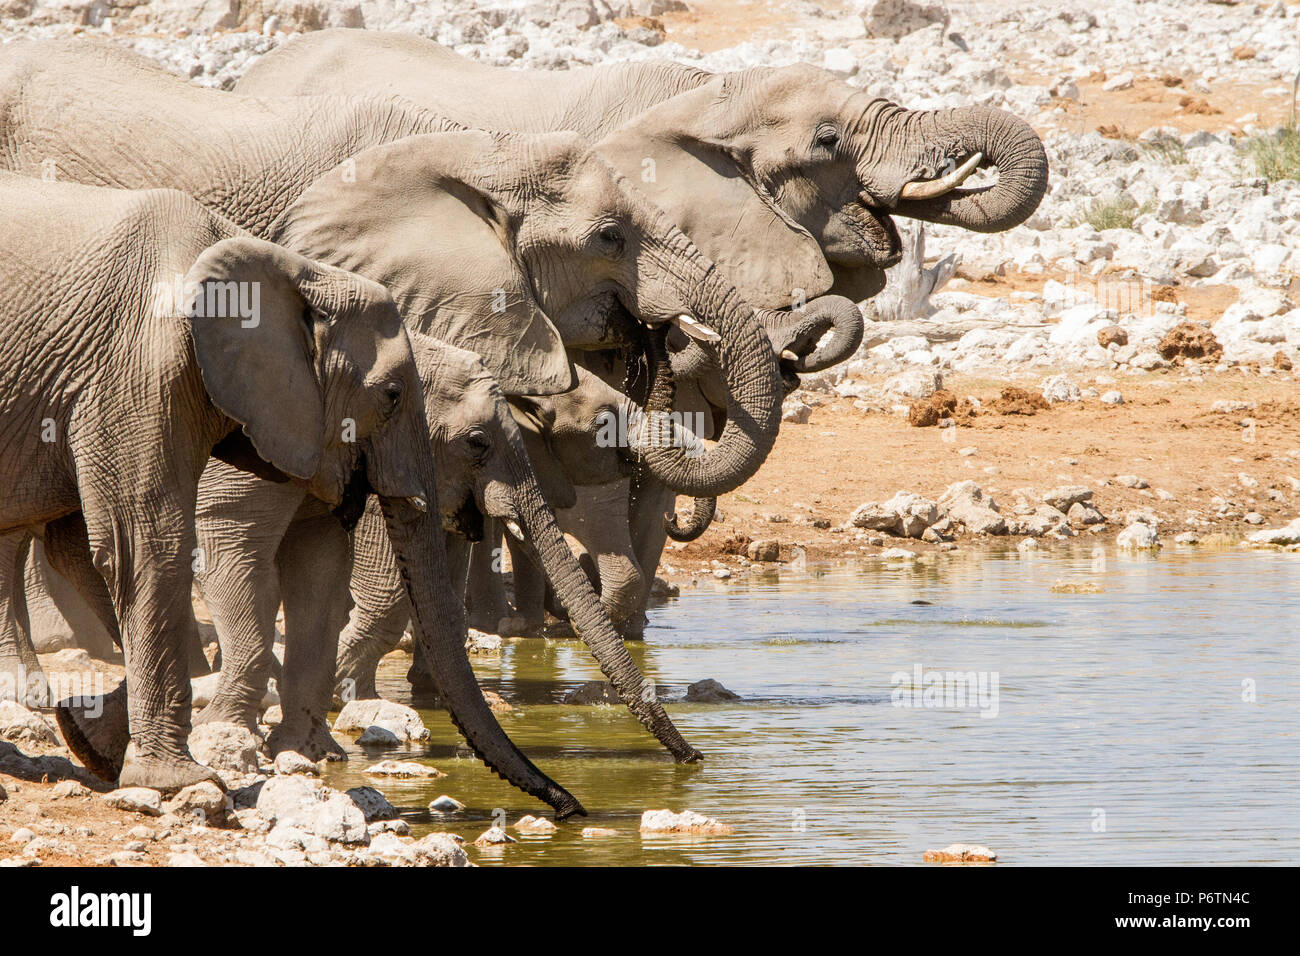 A group of African Elephants - Loxodonta - trunks out and curled, drinking at Okaukeujo waterhole in Etosha. - Stock Image